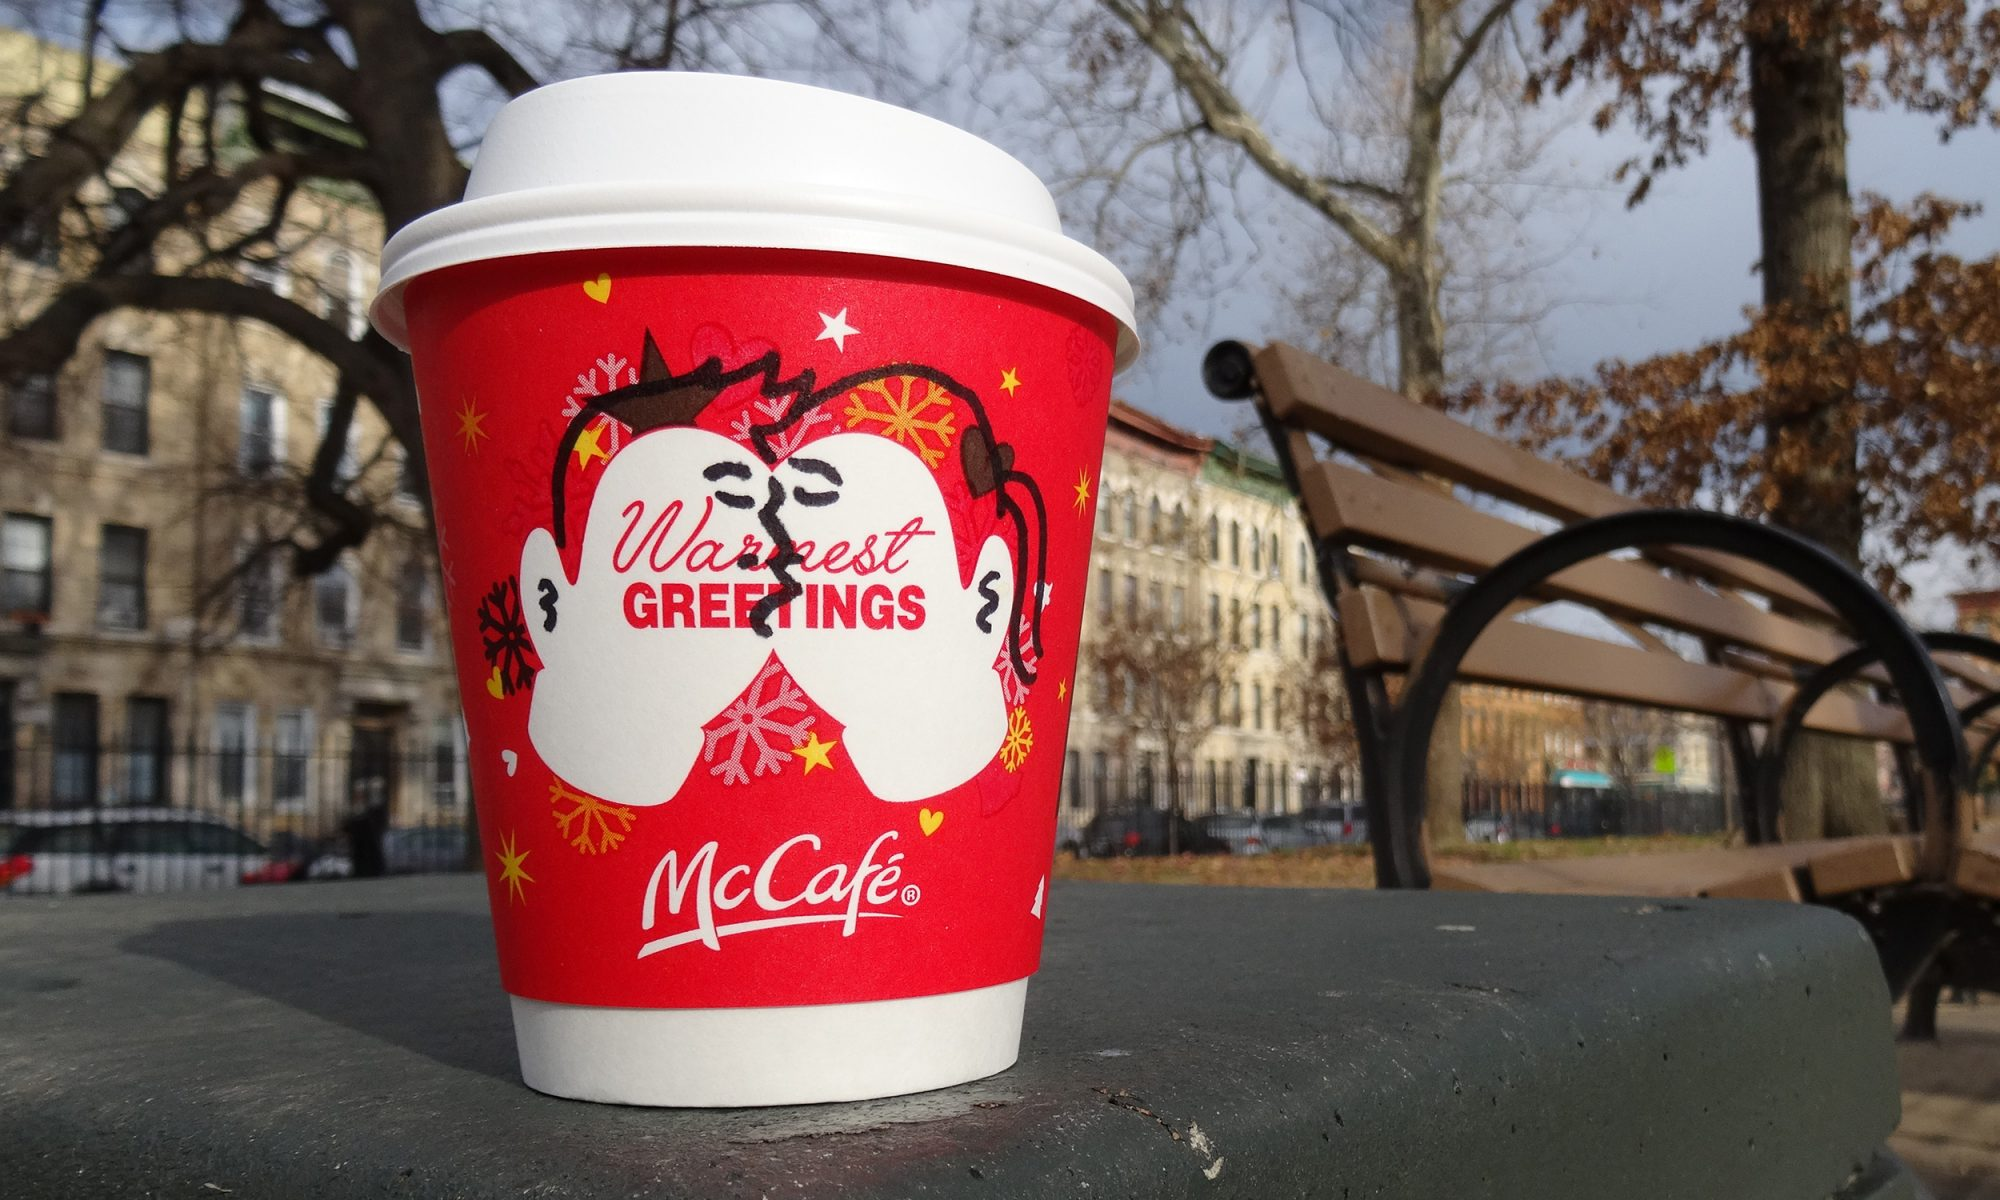 EC: 8 More Things You Can Draw on the McDonald's Holiday Cup